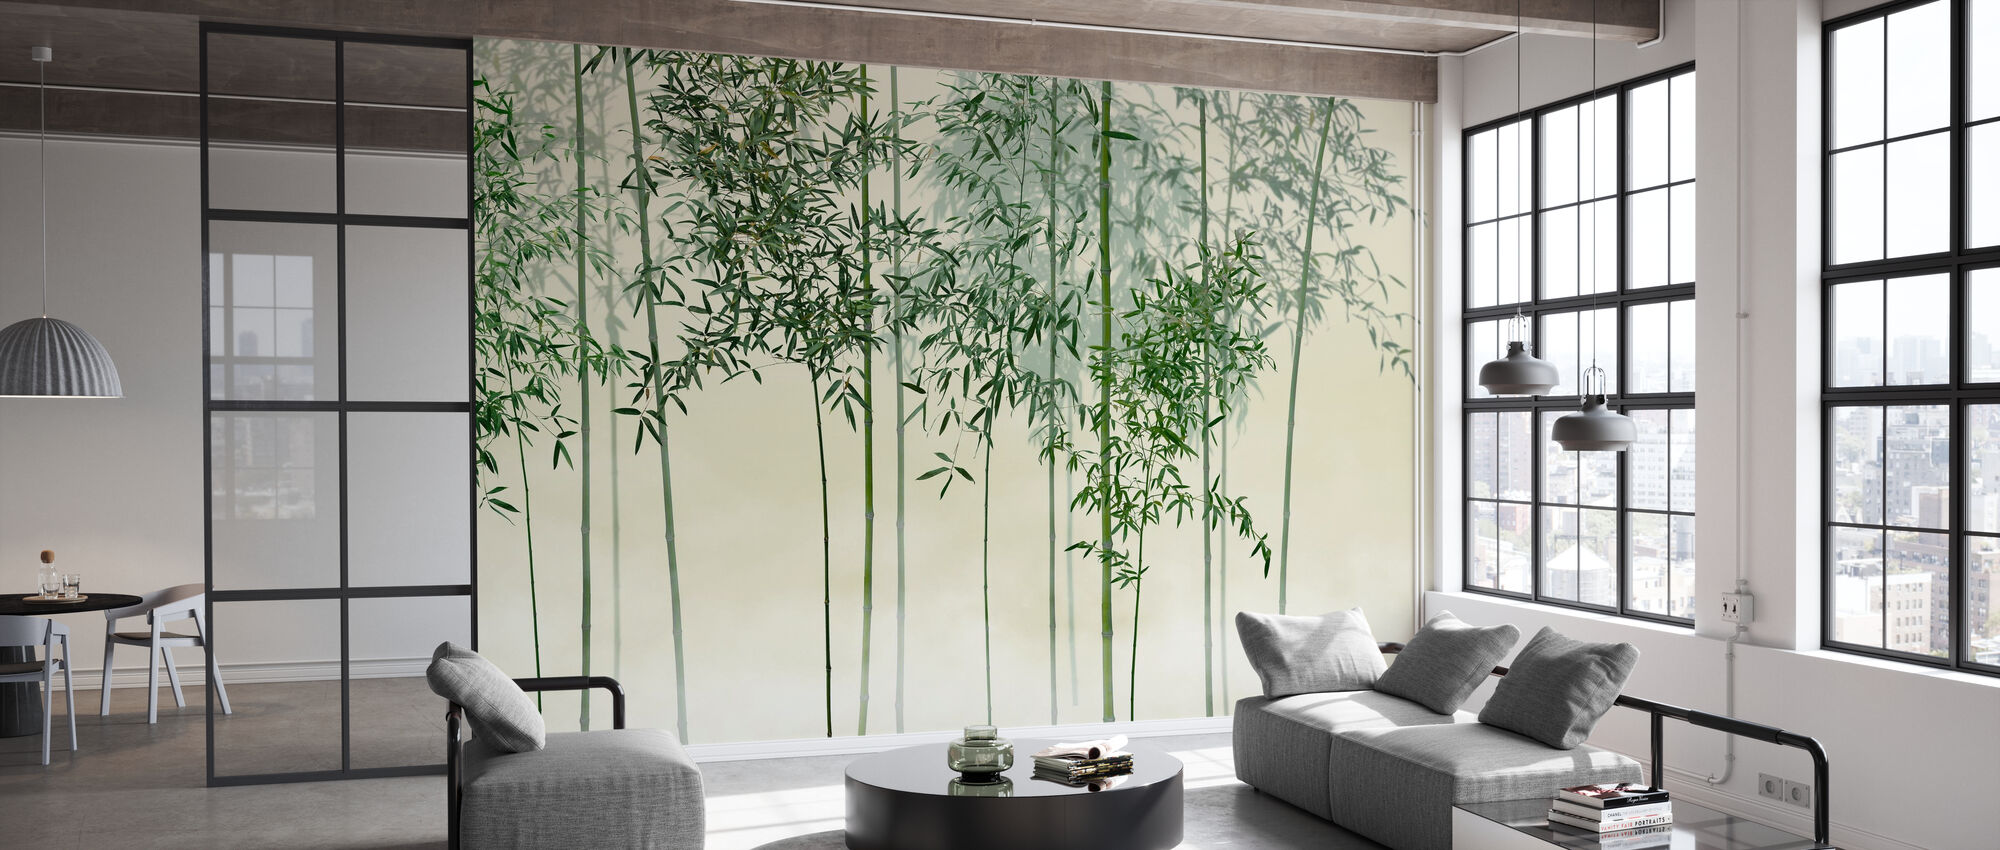 Bamboo Trees View - Green - Wallpaper - Office